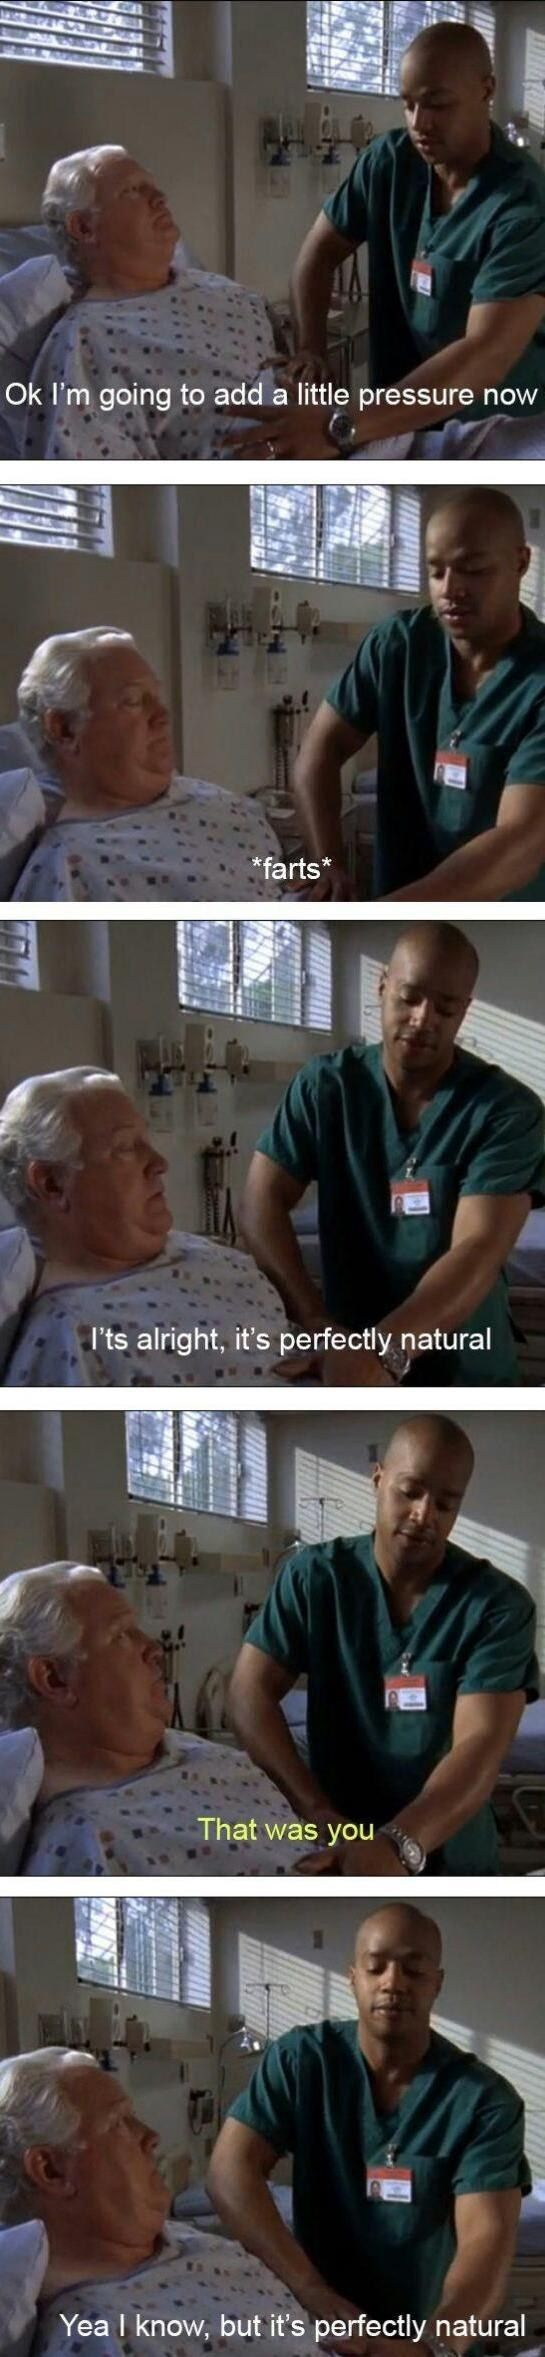 "When Turk tried to pass it off. | 27 ""Scrubs"" Moments That Will Make You Laugh Every Time"